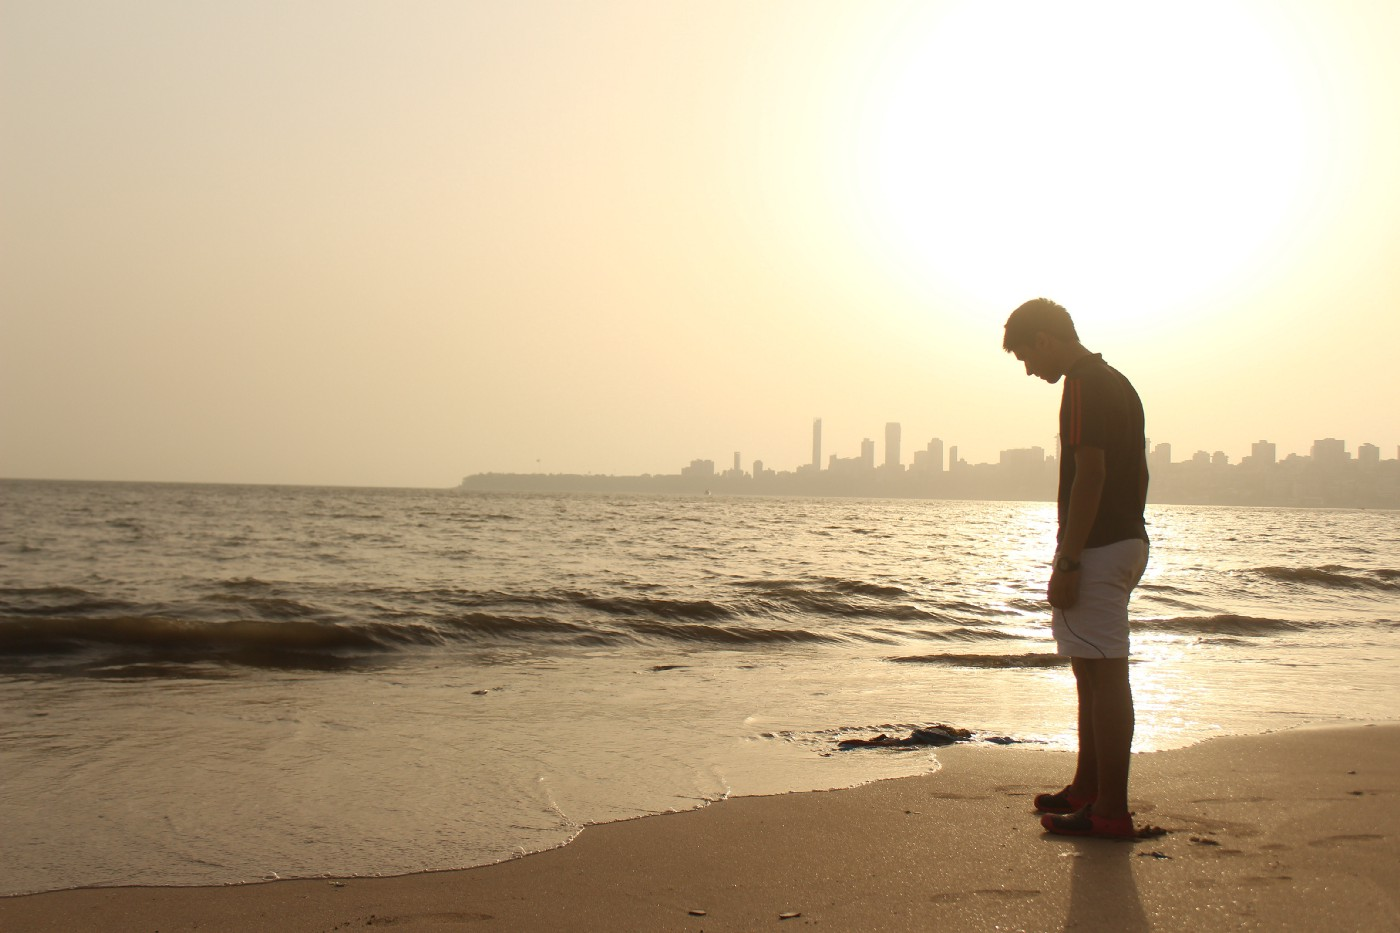 A software developer standing on the sea shore during sunset